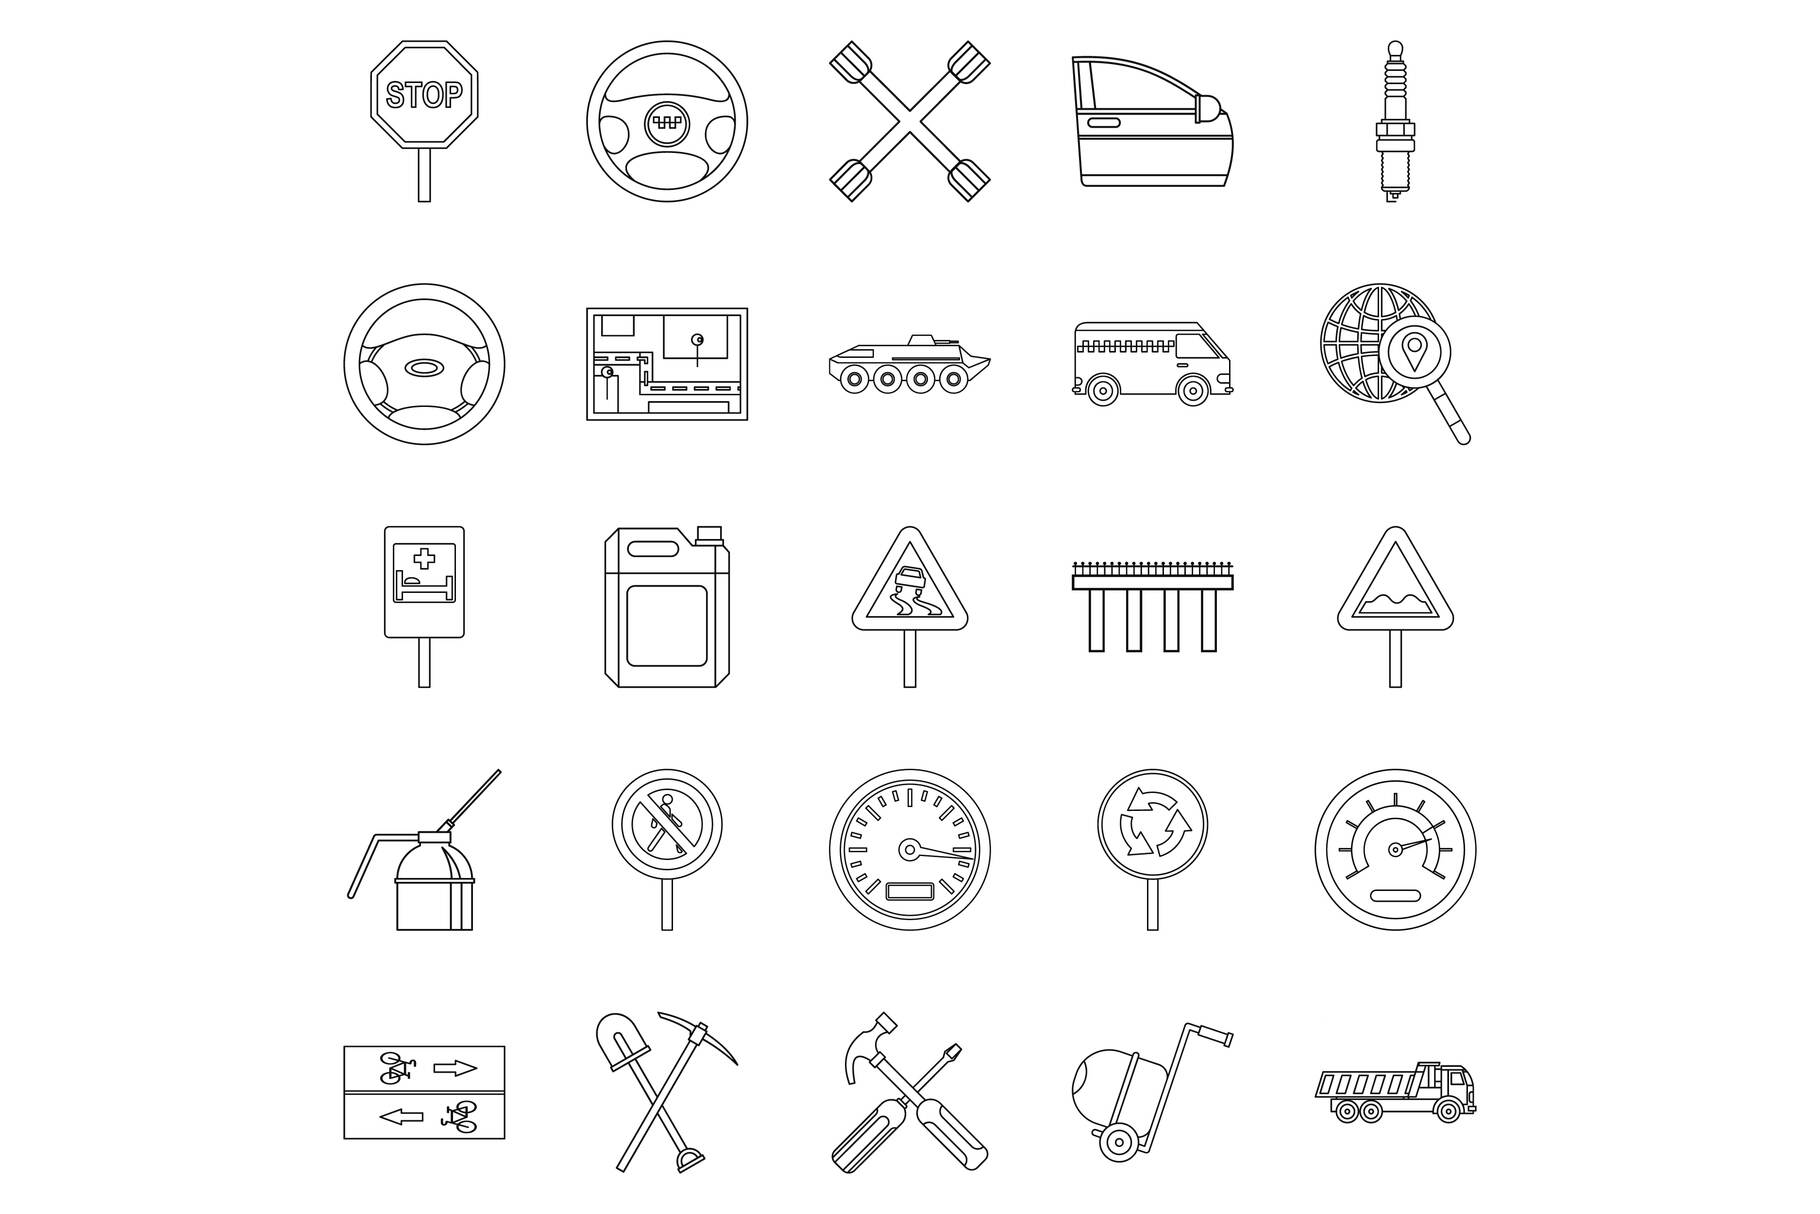 Apparatus icons set, outline style example image 1